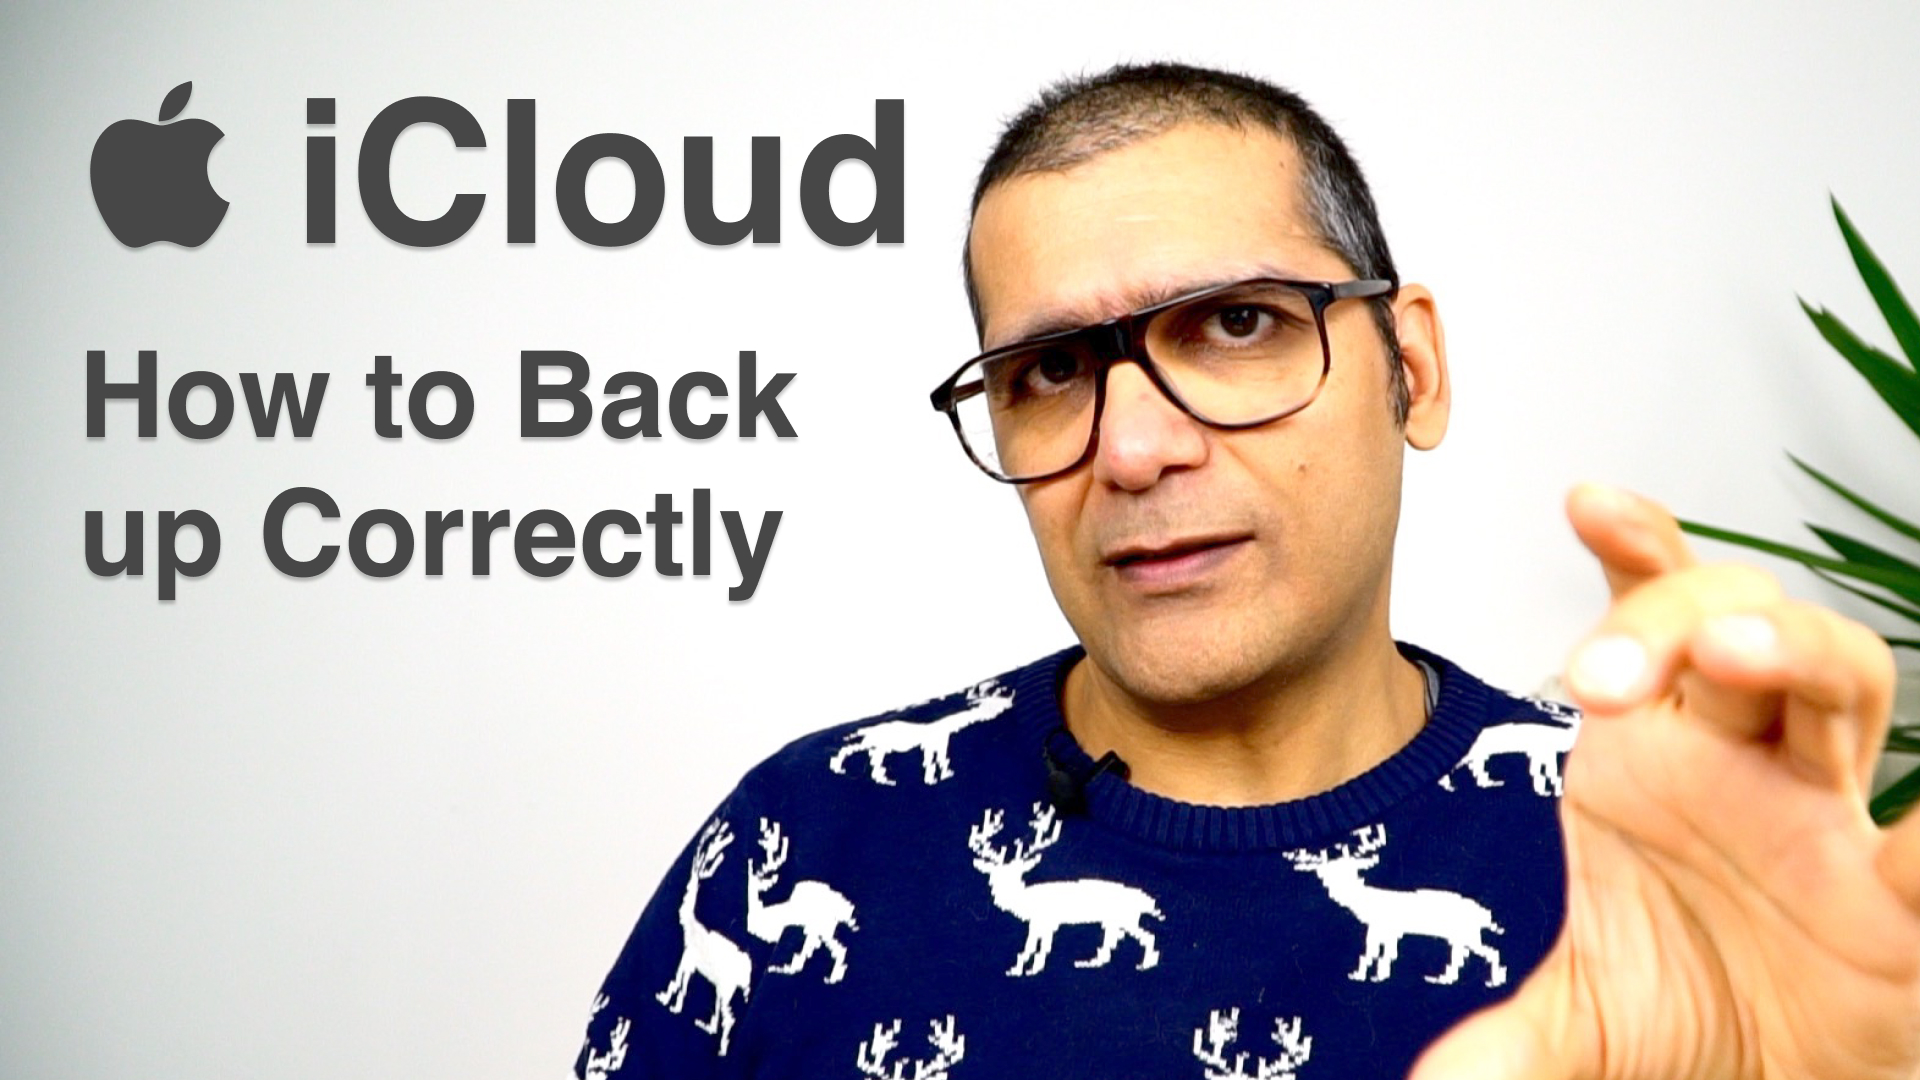 iCloud and how to backup your data properly